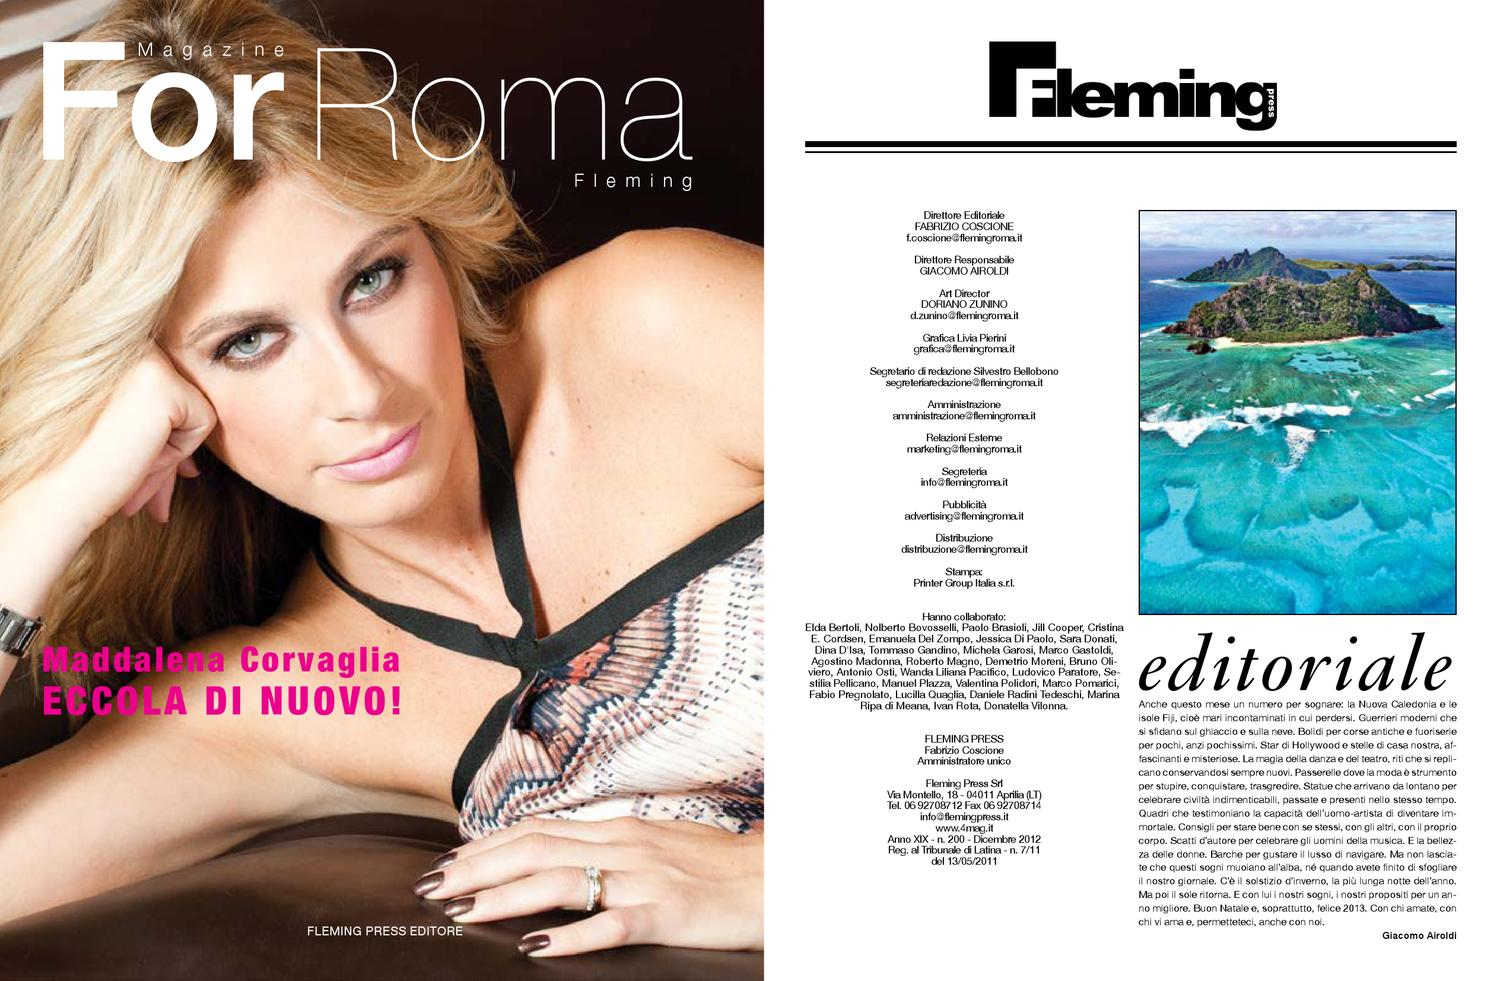 For Roma fleming febbraio 2013 by 4mag magazine - issuu